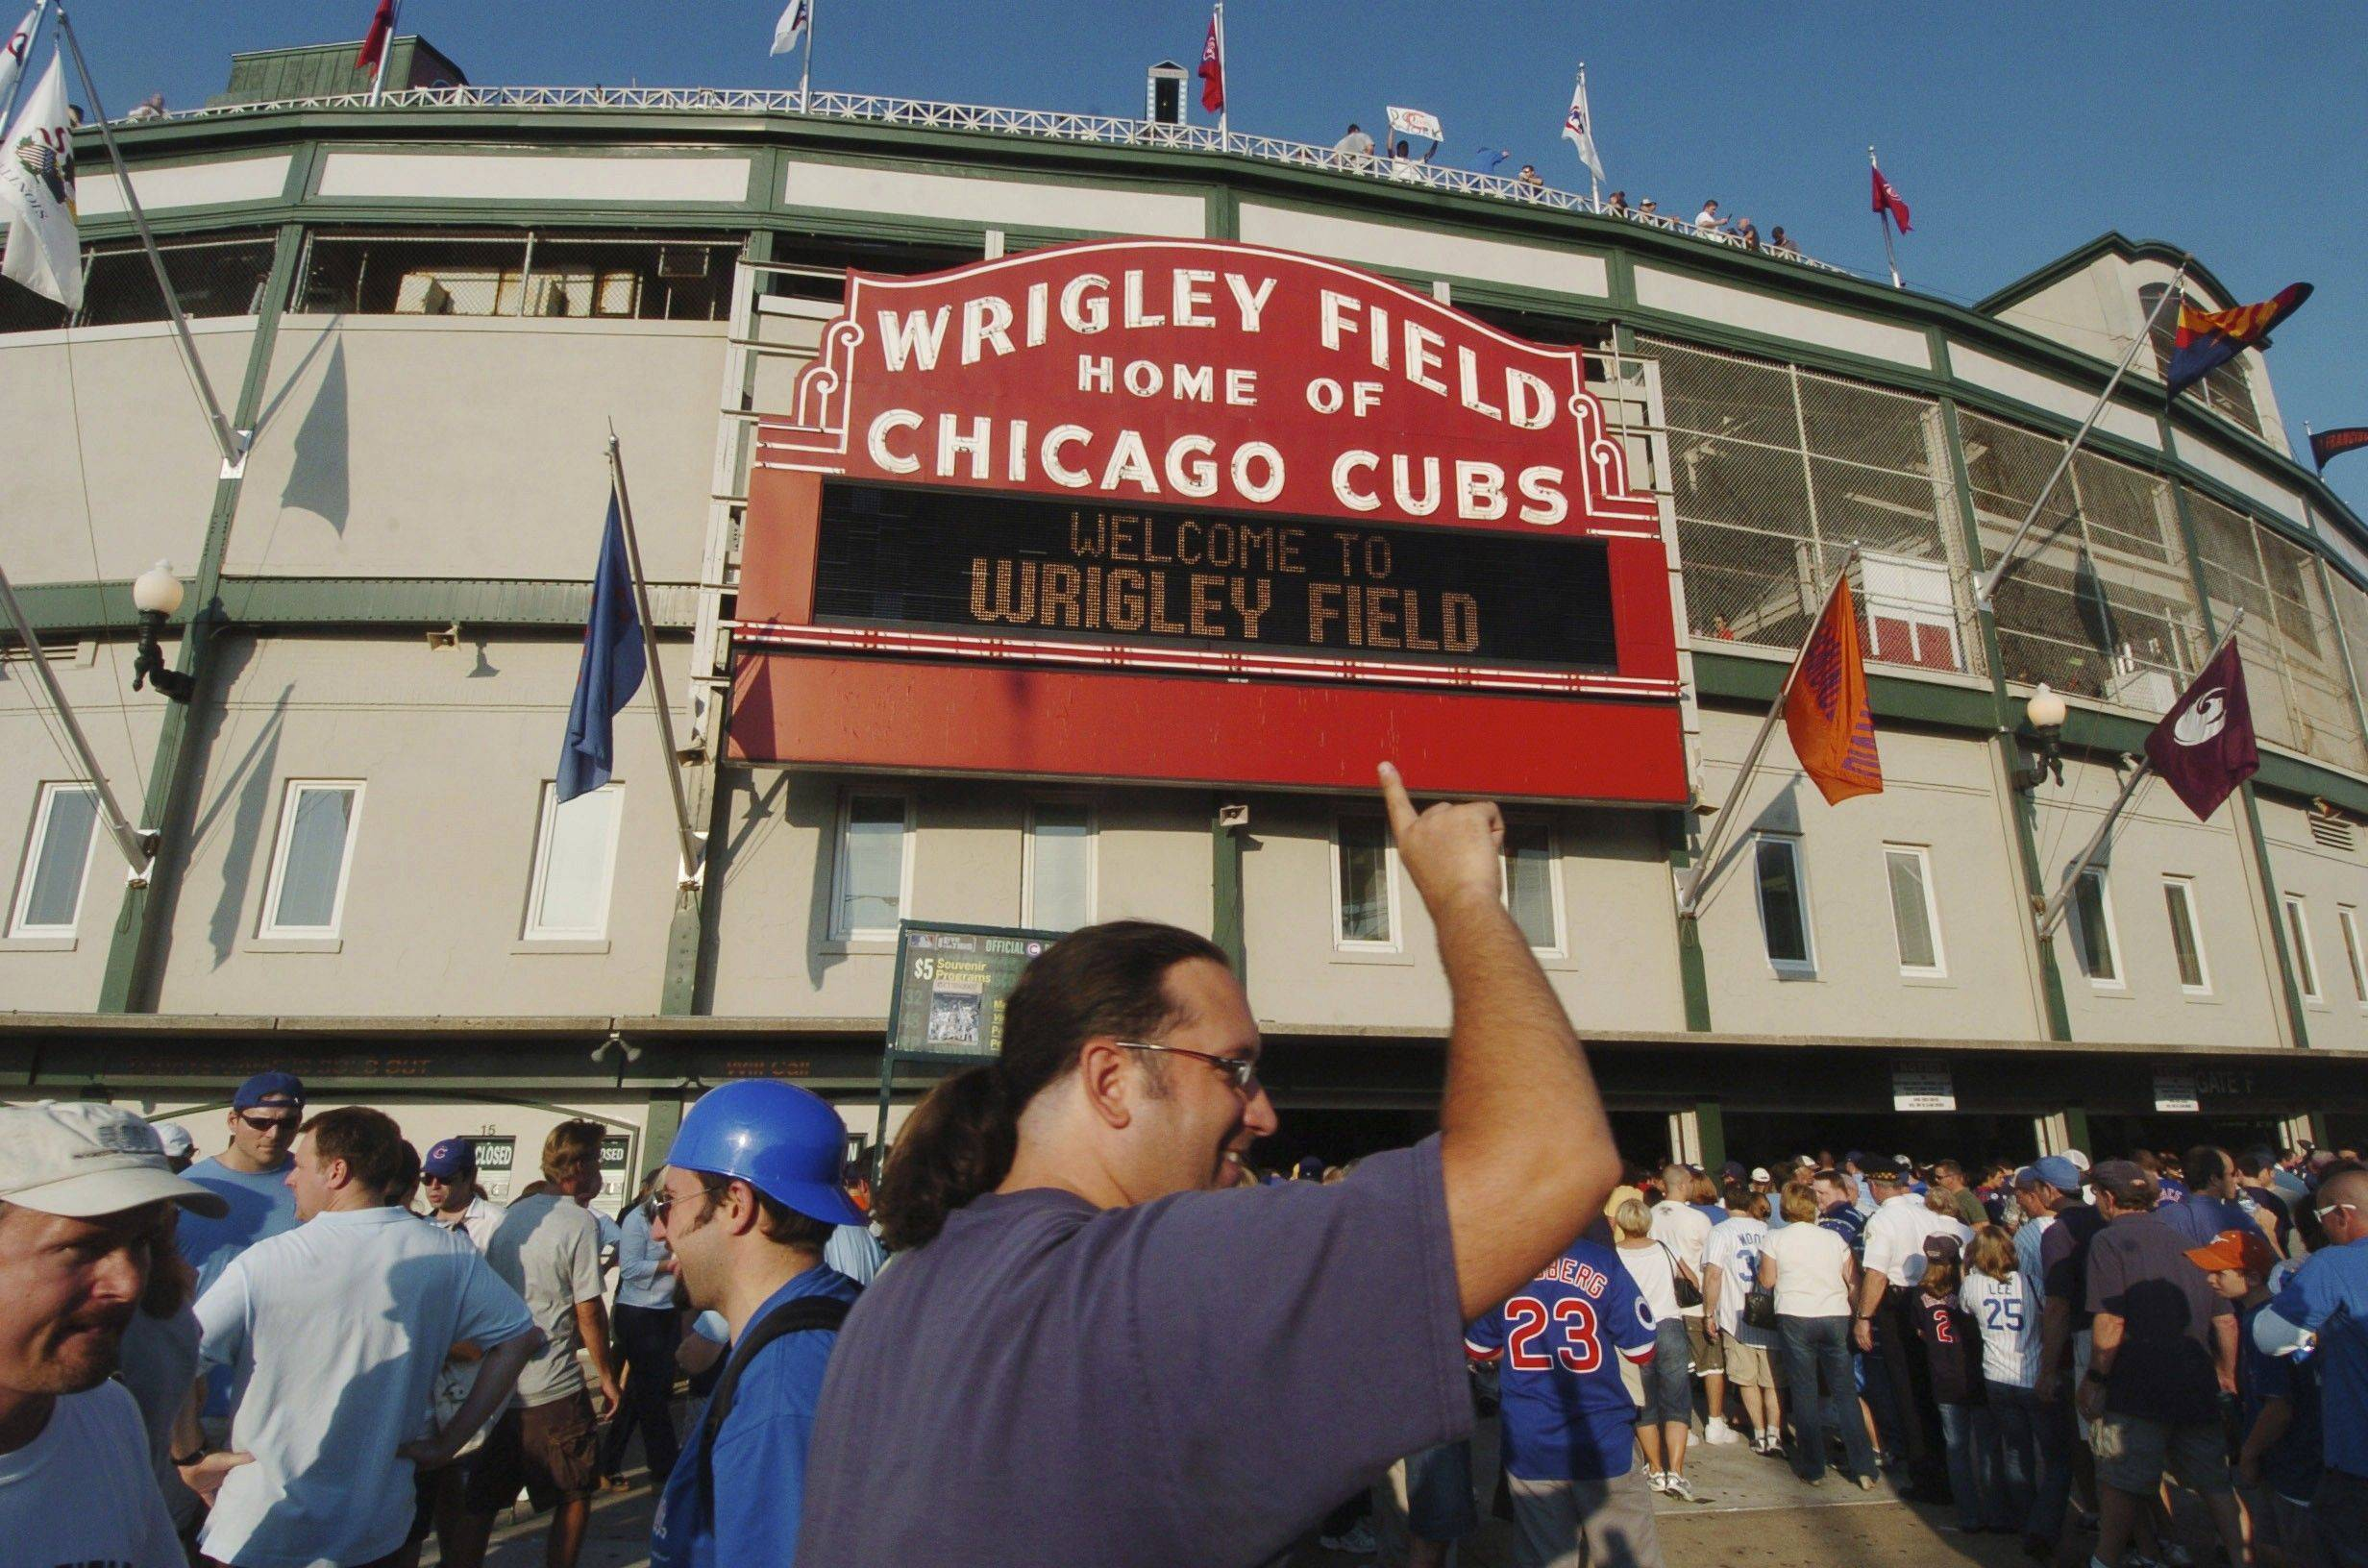 Cubs fans will get more power with their handsets during the season opener after Verizon Wireless and AT&T Wireless upgraded their networks.